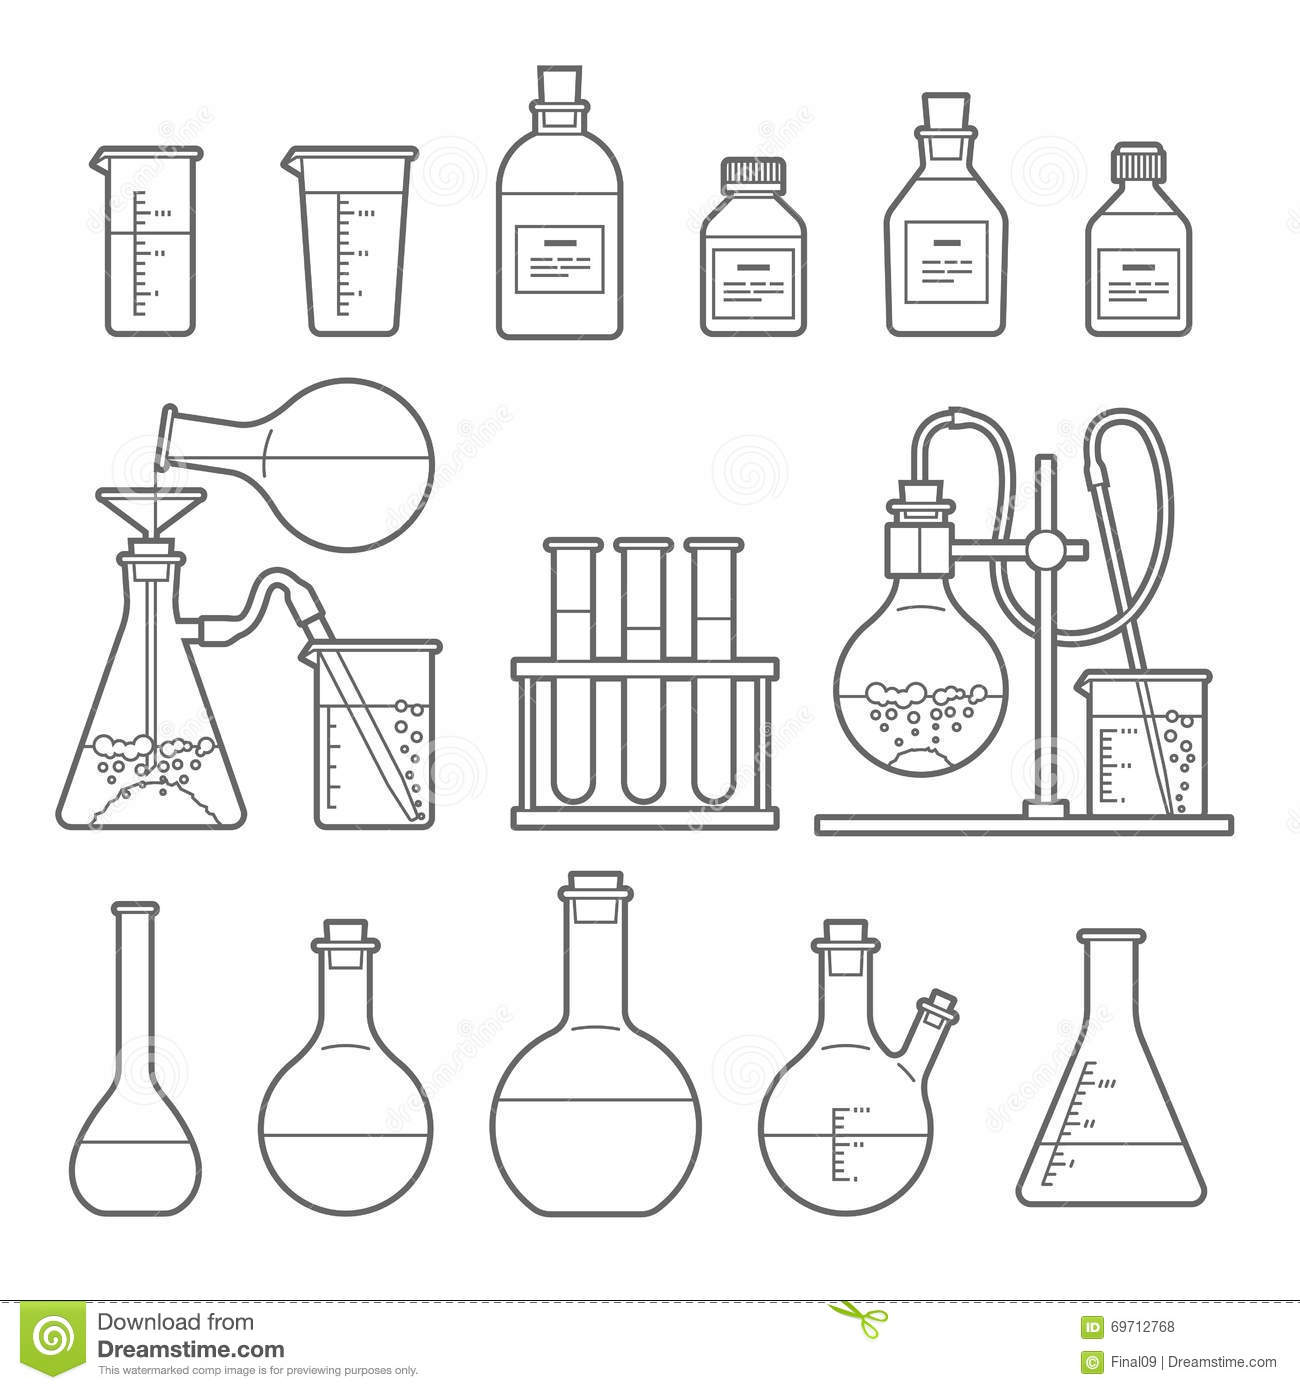 chemical glassware icon stock vector. illustration of microbiology